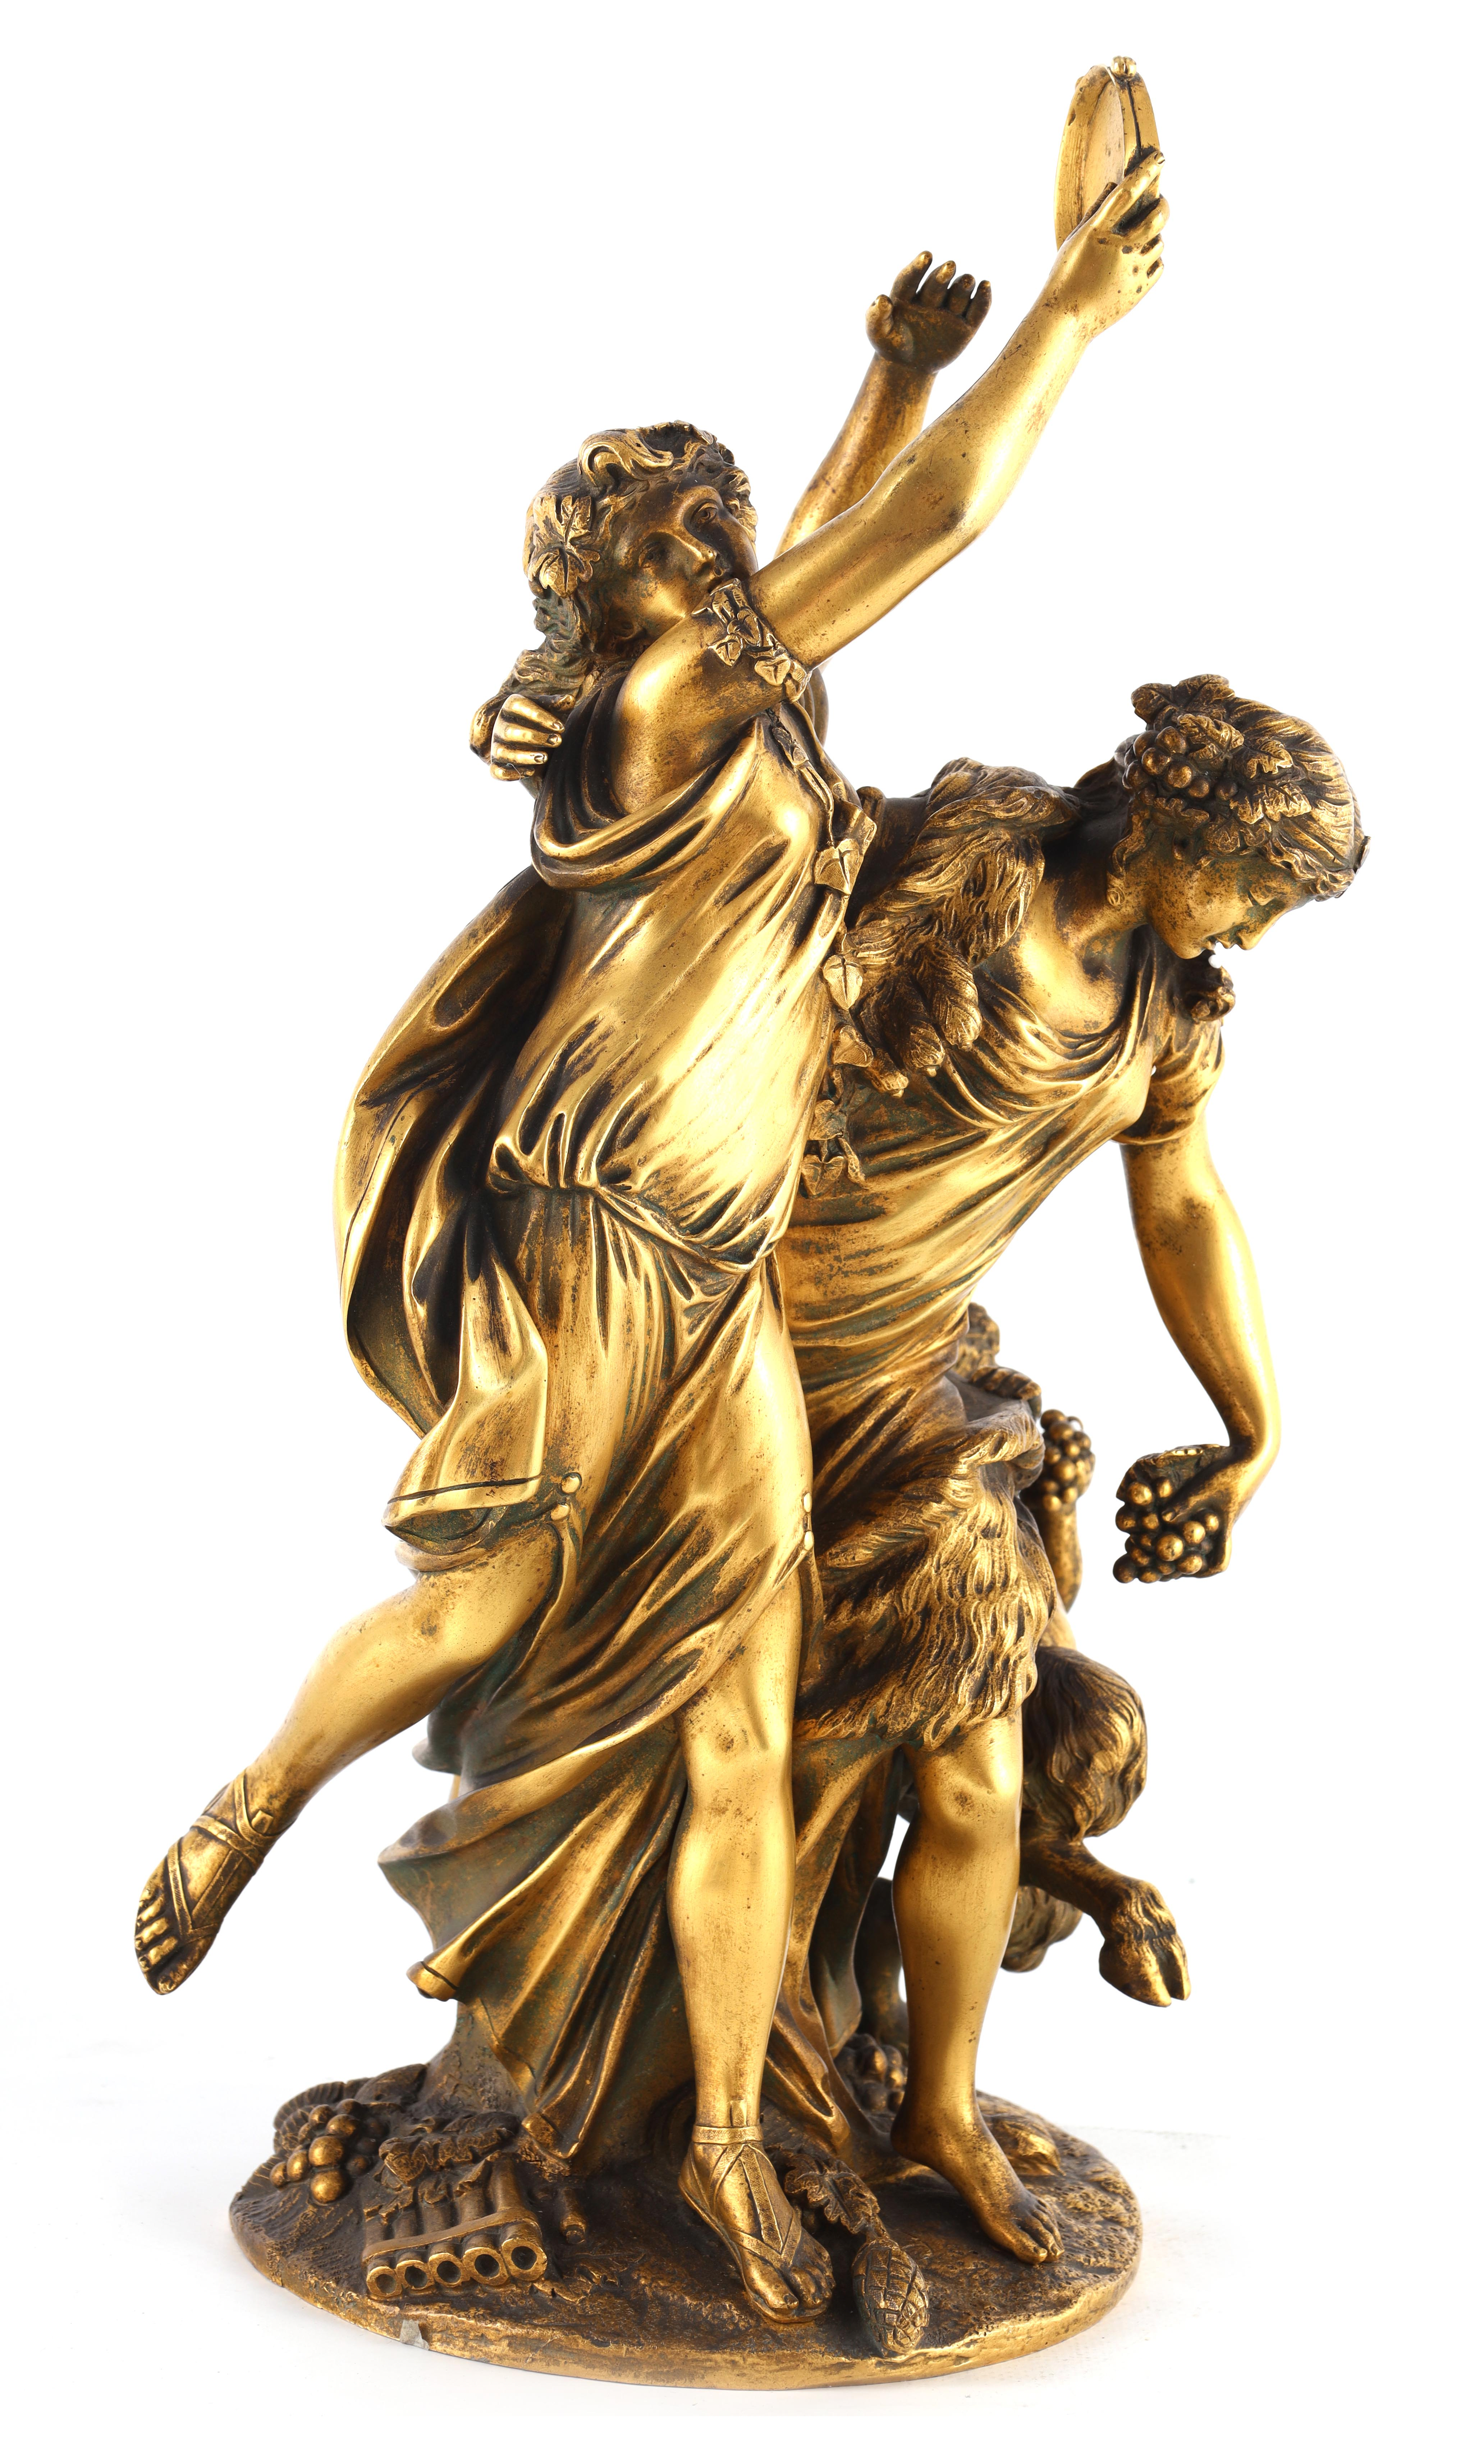 AFTER MICHAEL CLAUDE CLODION A LATE 19TH CENTURY FRENCH GILT BRONZE SCULPTURE titled 'Bacchanalia'